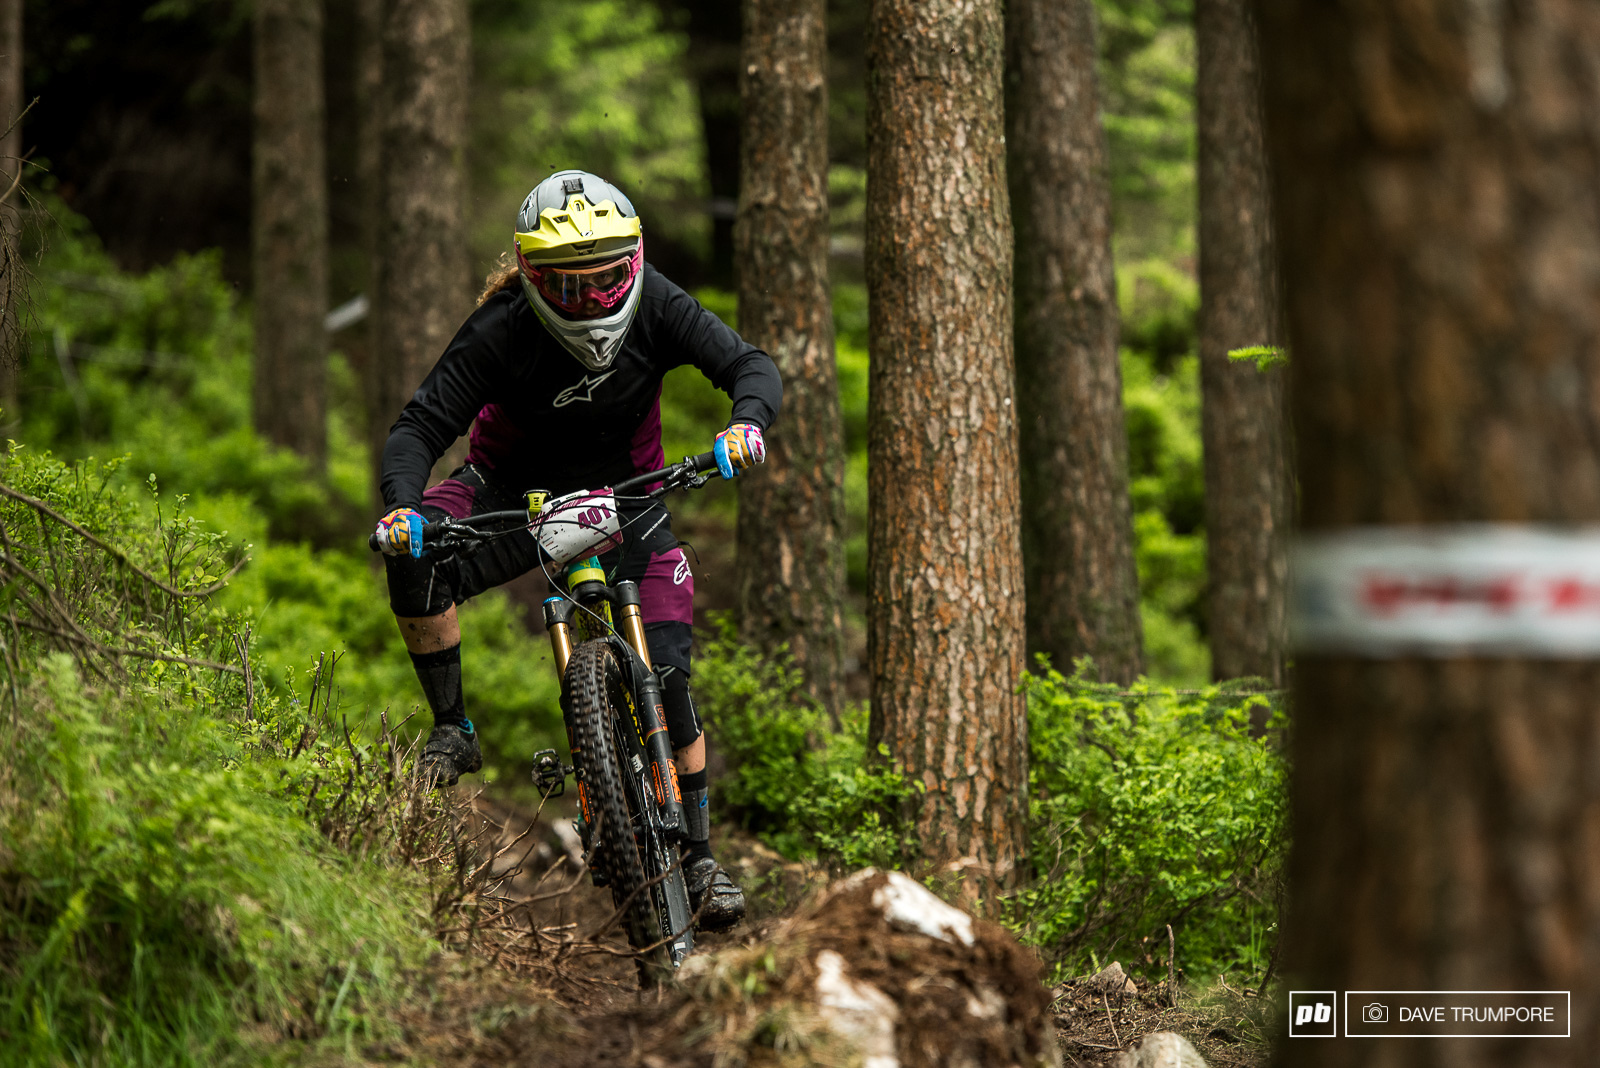 Off her podium pace seen last round in Madeira Noga Korem would end the day in 9th.